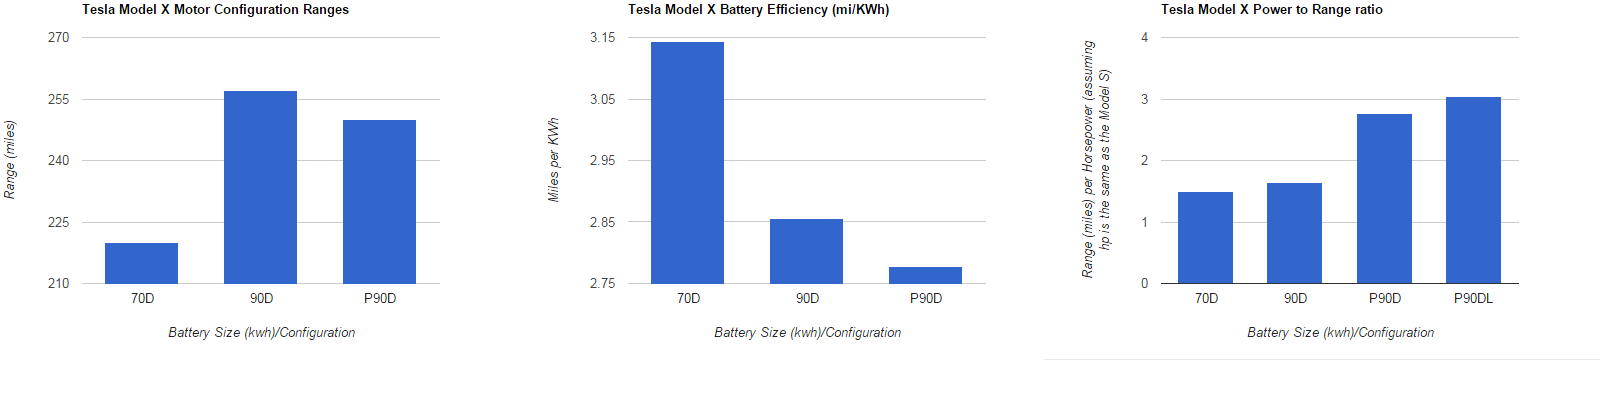 Tesla Model X Battery Specs.png